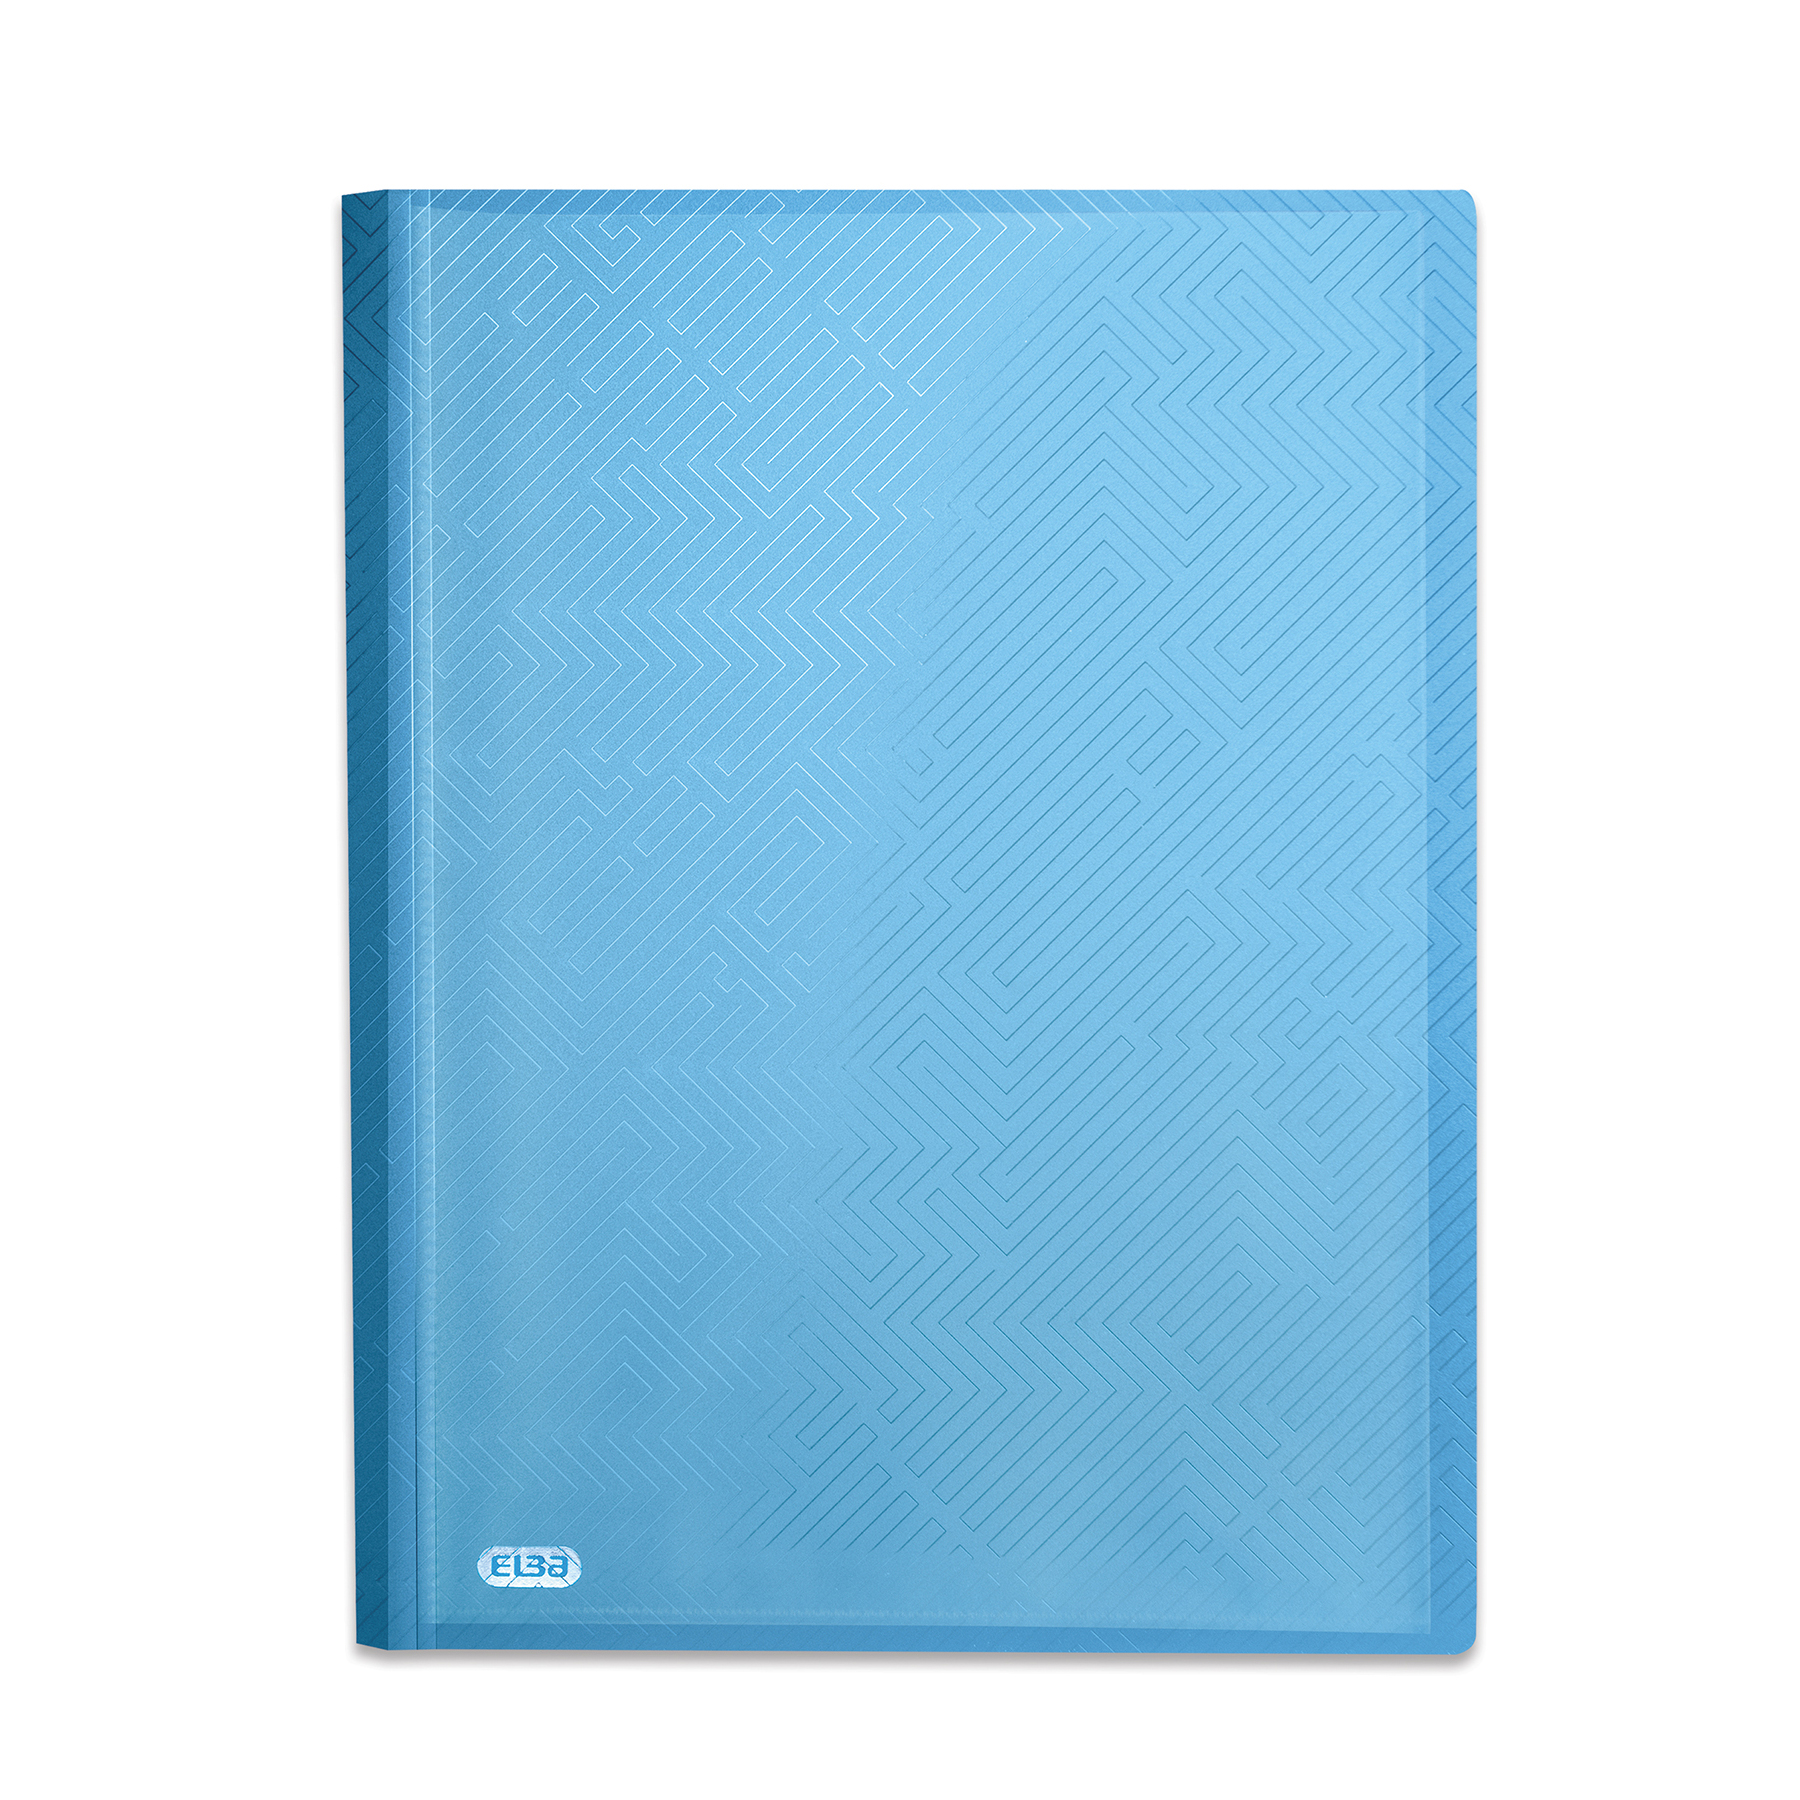 Display Books Elba Bright Display Book PP 20 Pkt A4 Blue Ref 400104983 Pack 10